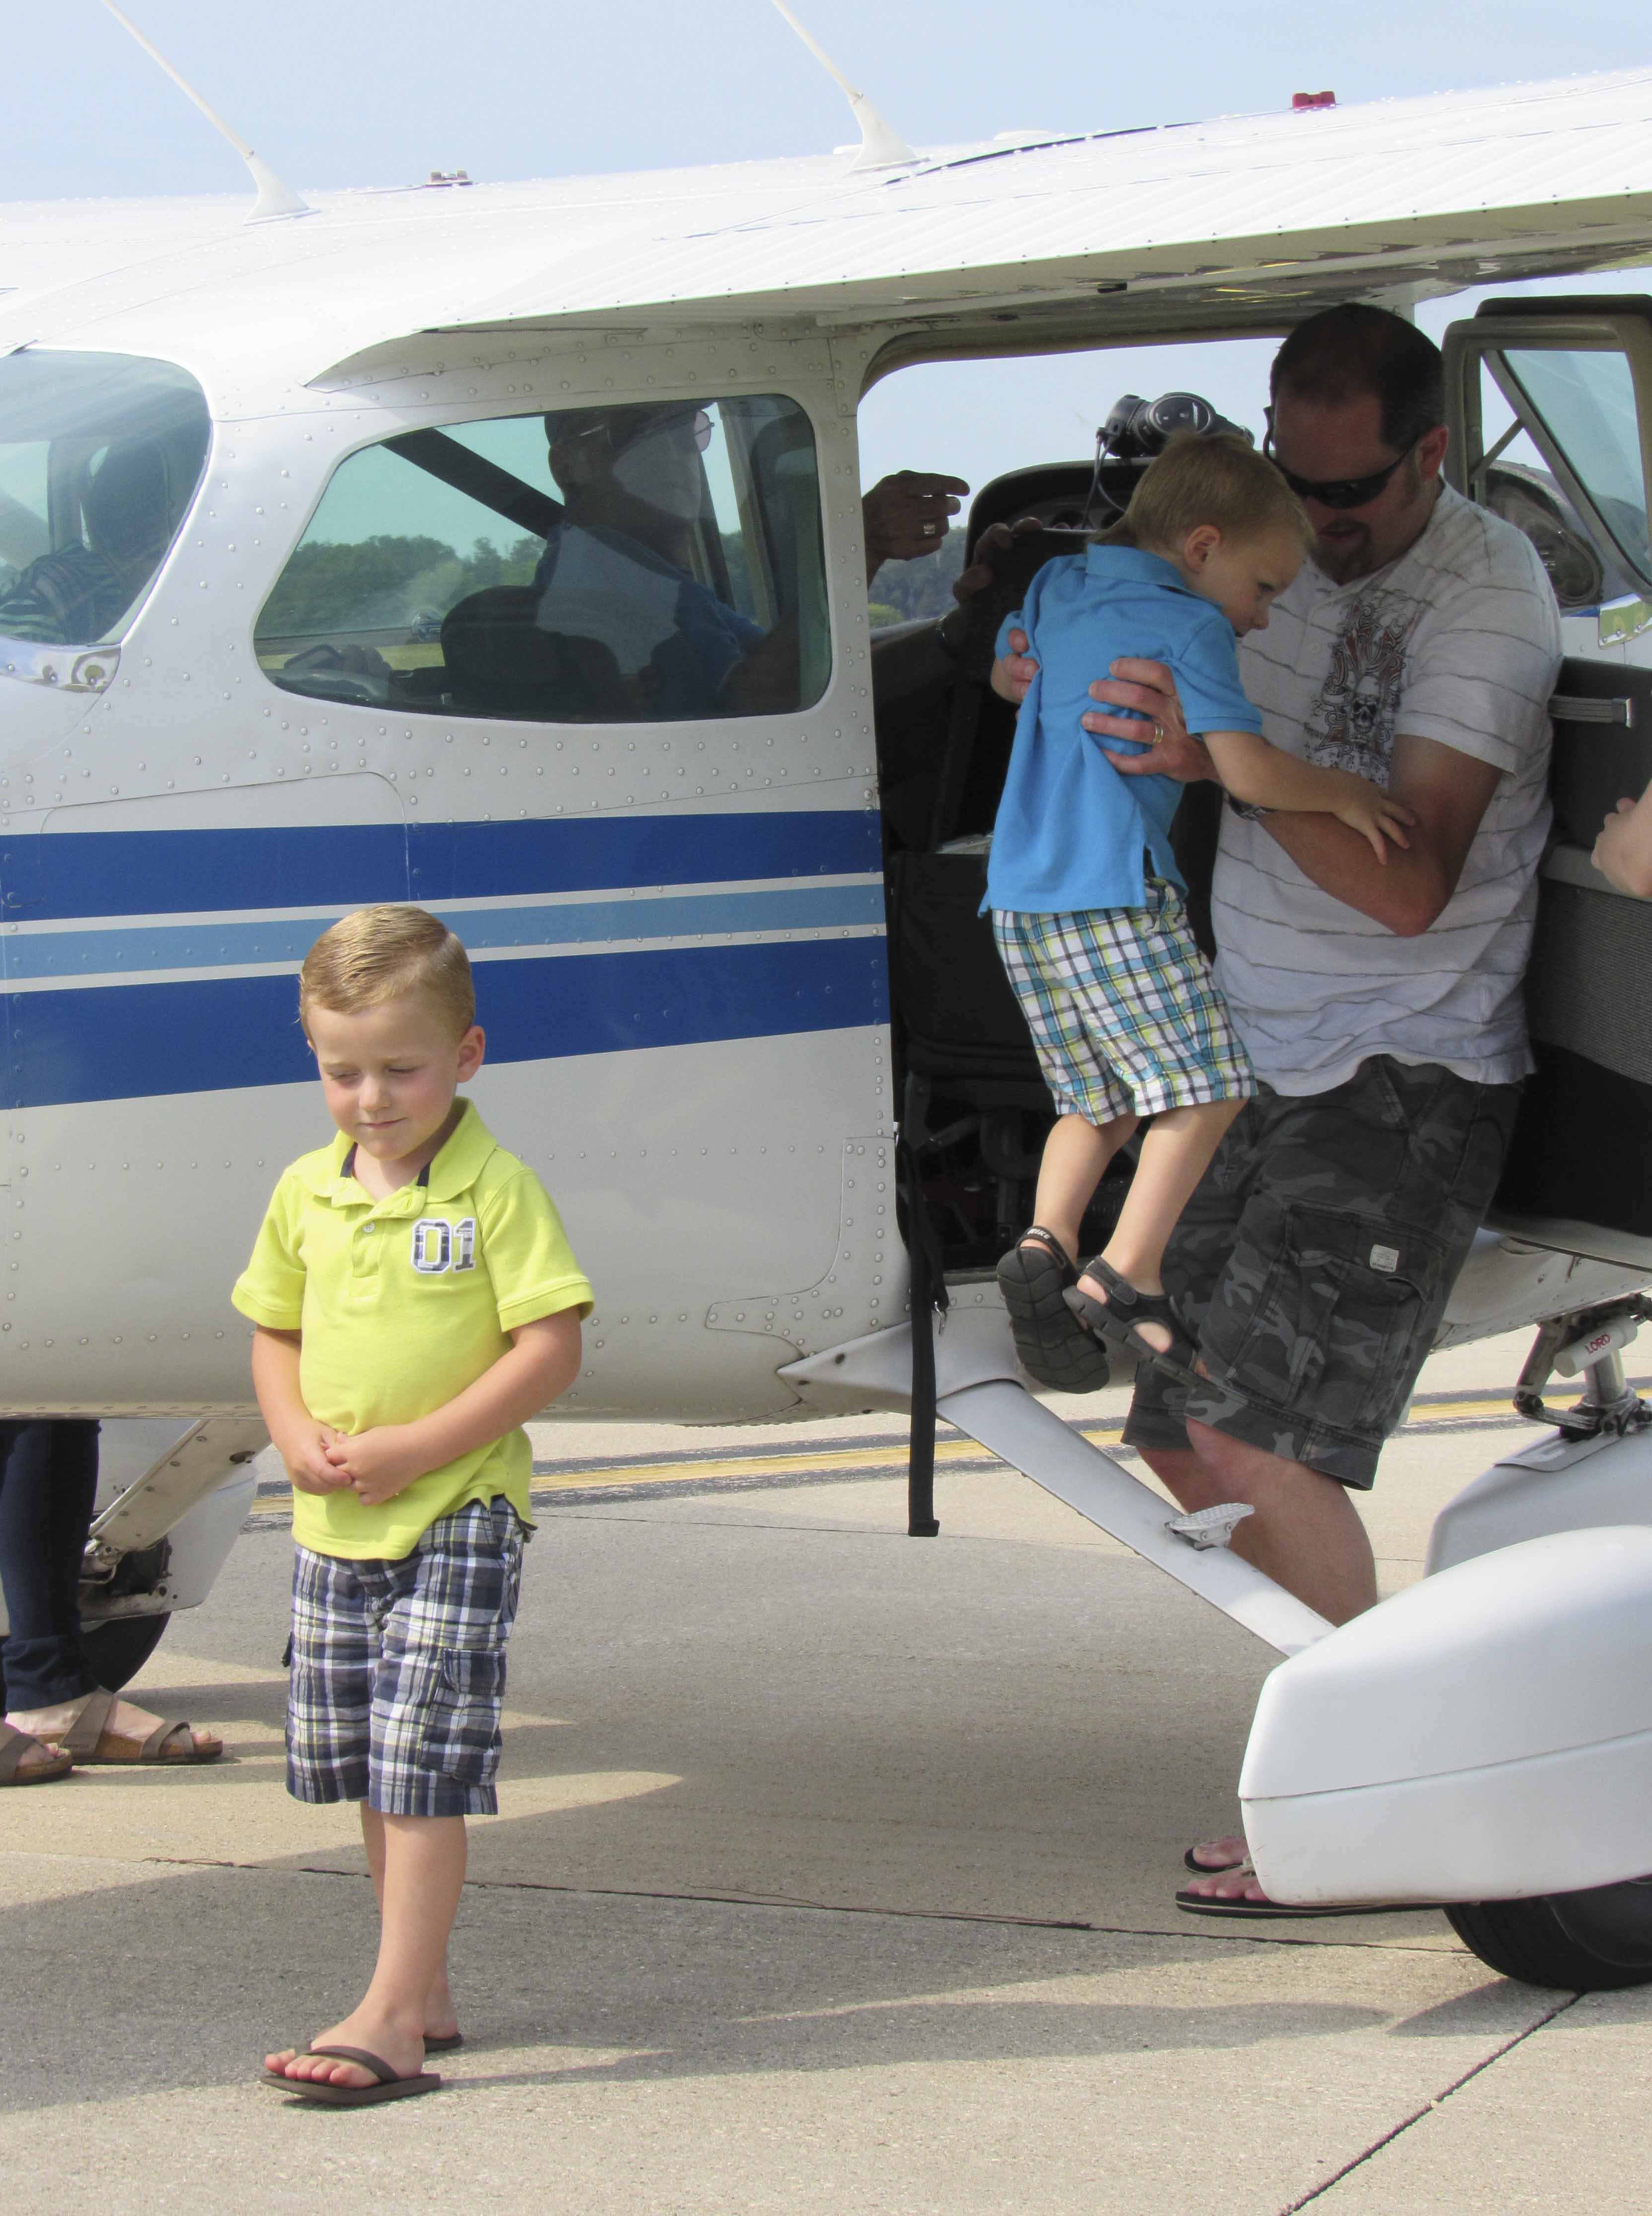 Tom Flannery helps his sons Keiran and Nyles out of a plane after a 30-minute ride. Several families enjoyed plane rides during the Fly-in Breakfast. The Flannery family from Alburnett spent the morning at the Monticello airport. Keiran aspires to be a pilot some day.